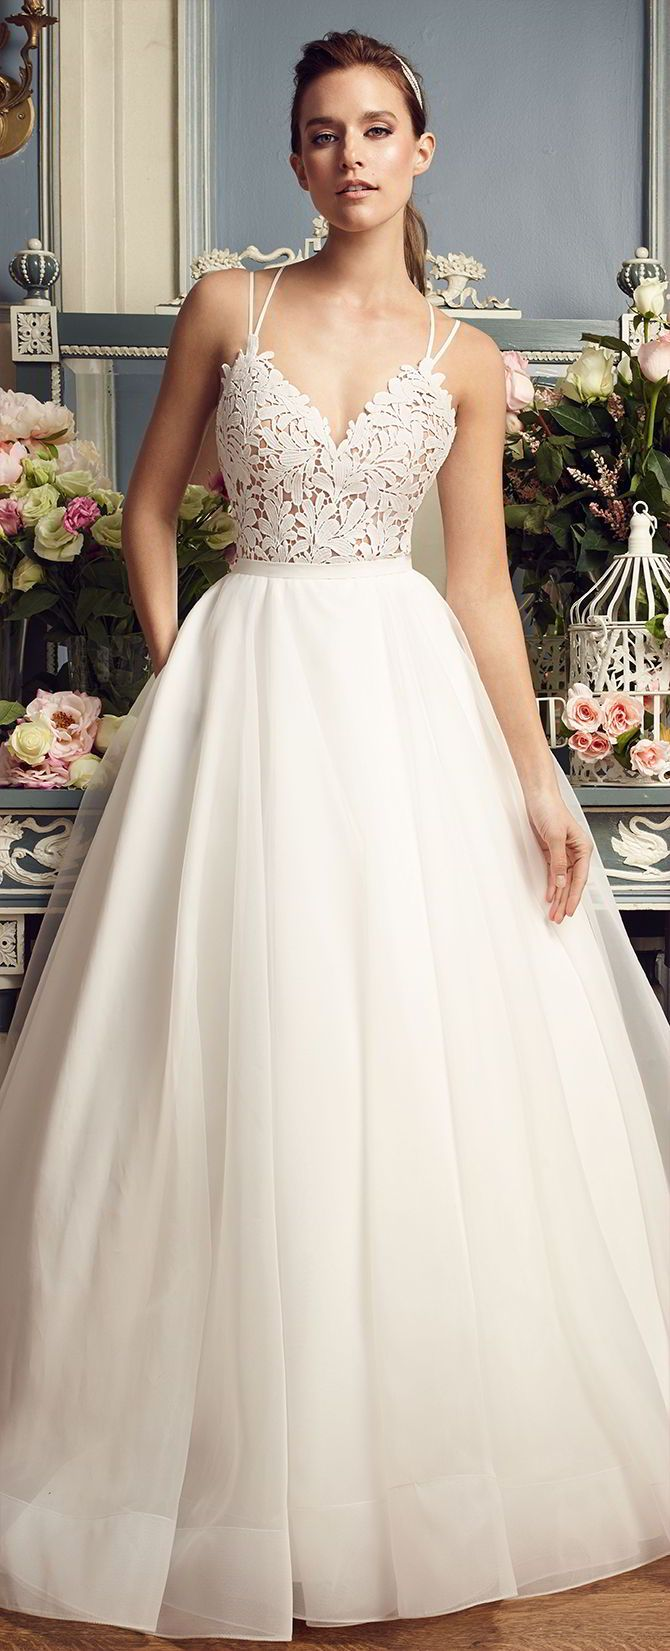 Mikaella bridal fall guipure lace and organza wedding dress